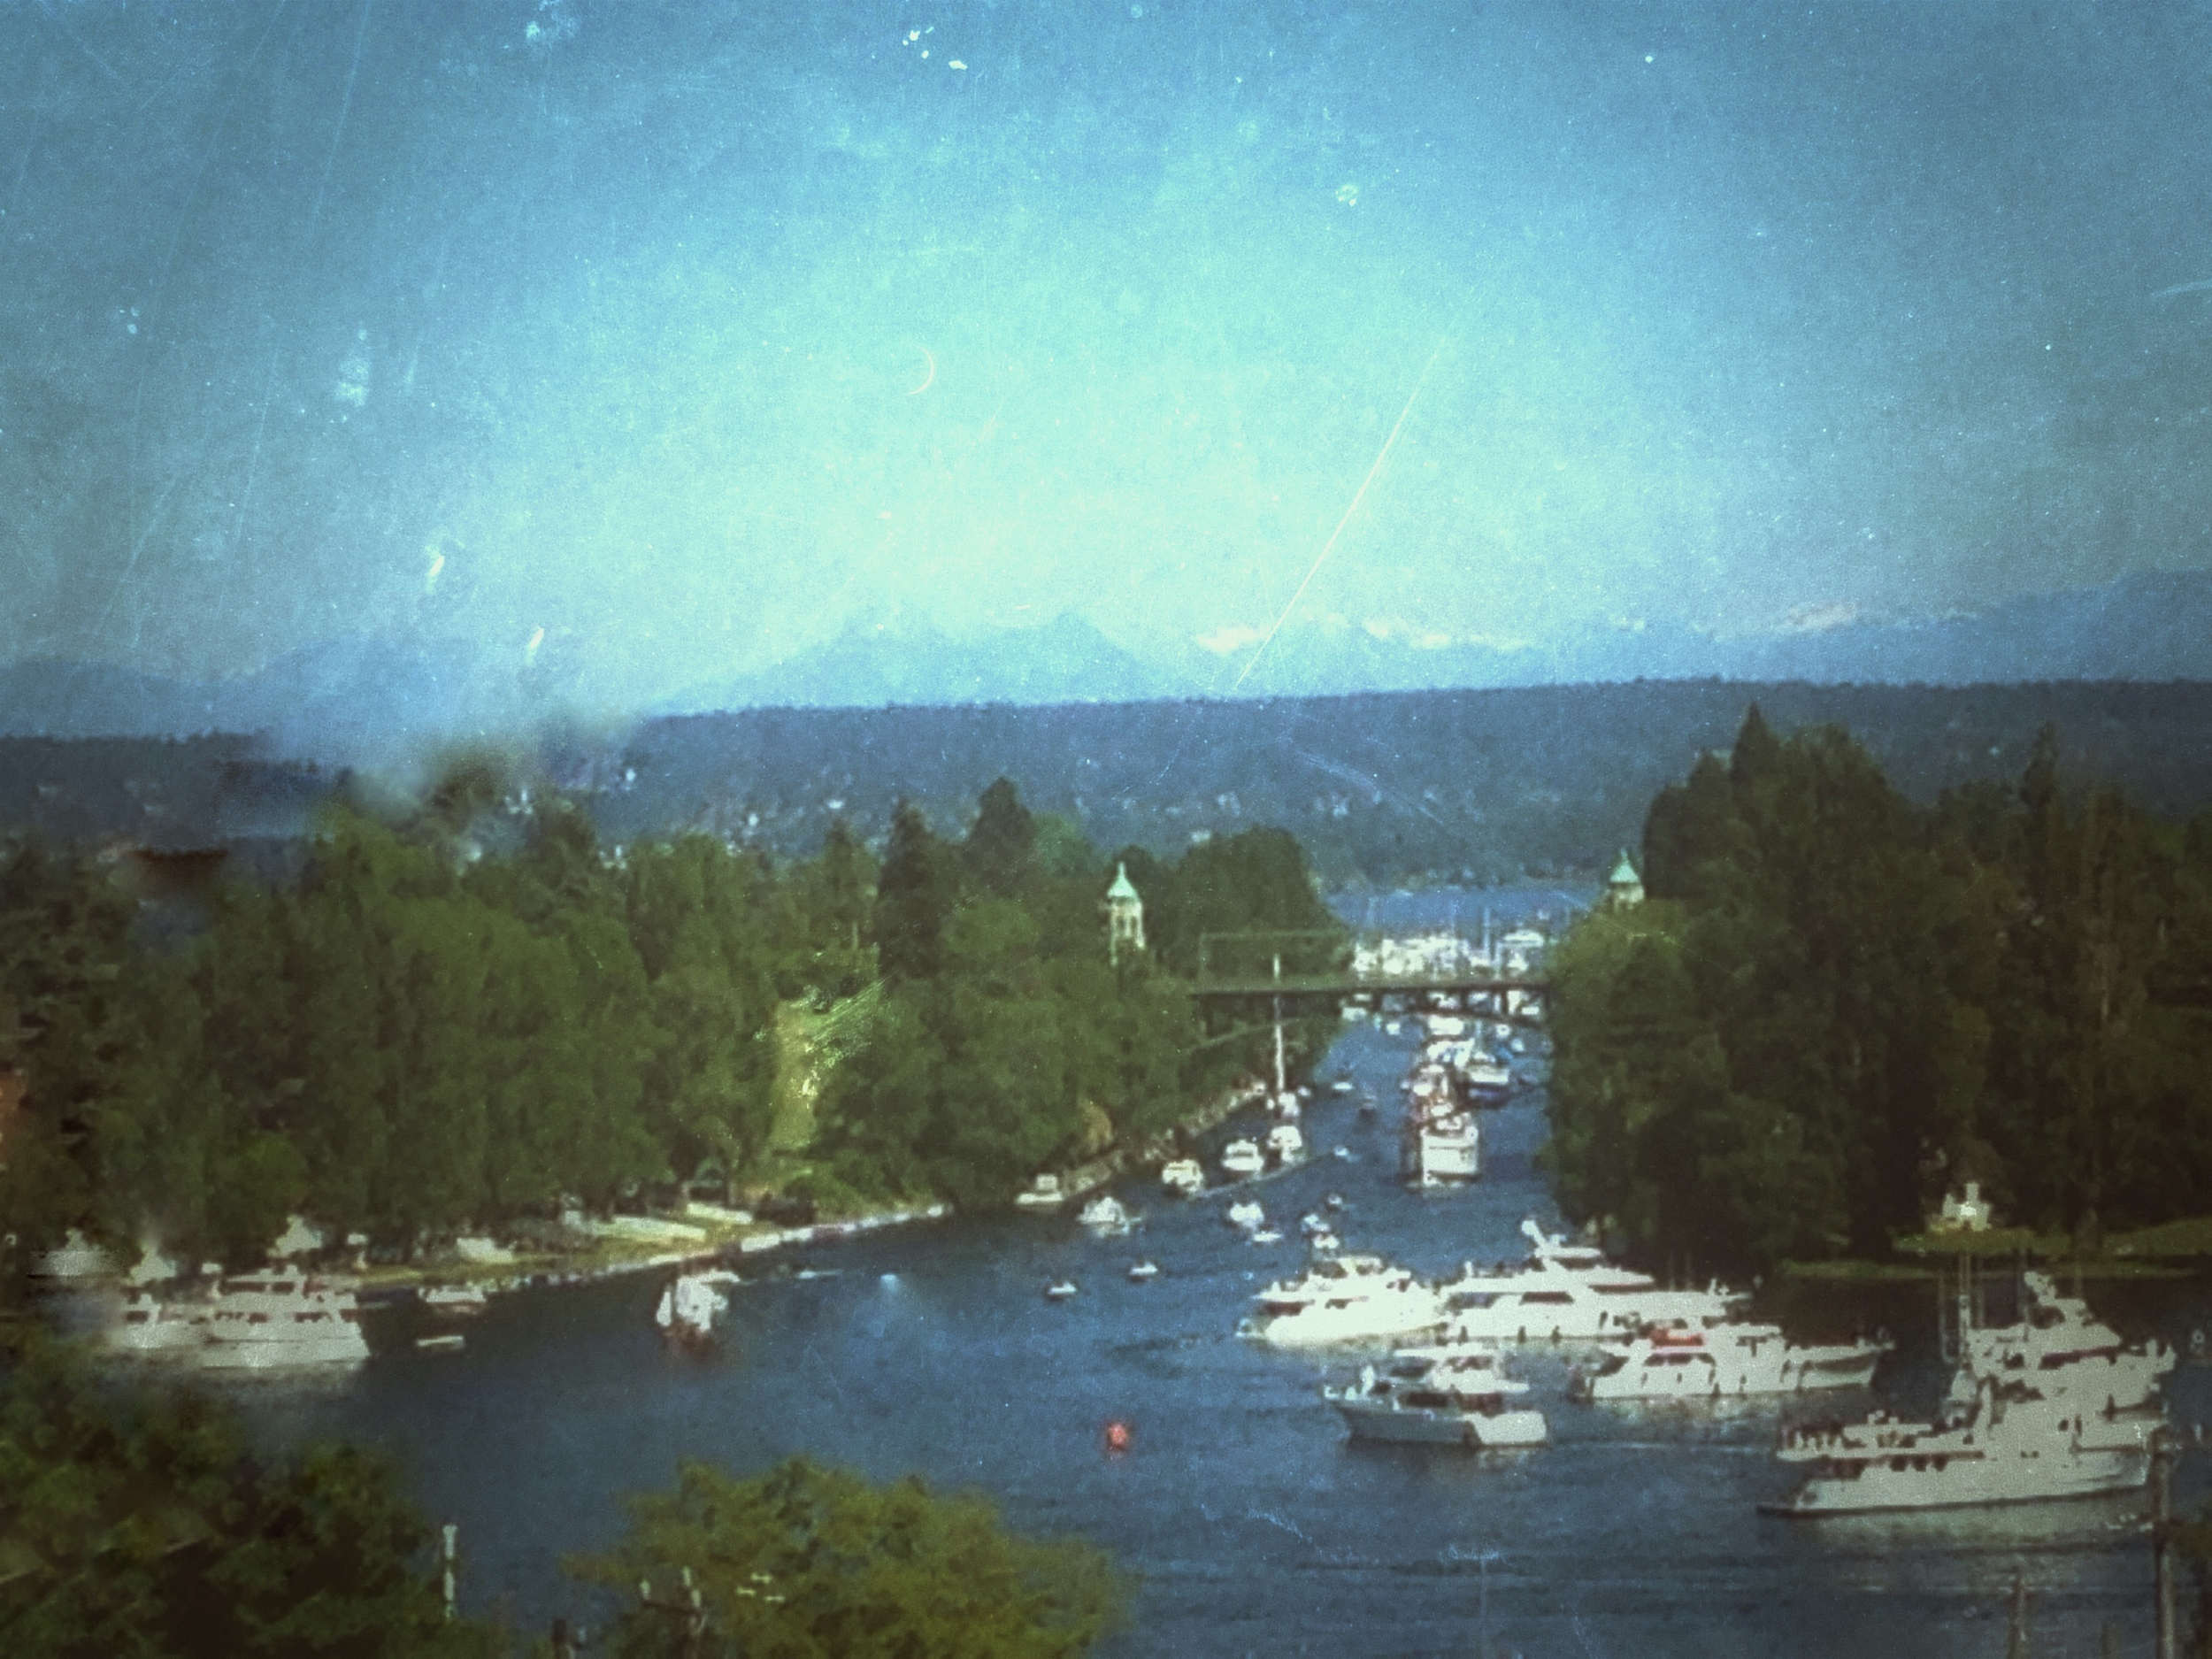 Opening Day, May 7, 2016. Portage Bay (foreground), leading into the Montlake Cut, connecting to Lake Washington. Cascade Mountains in the distance.  The Seattle Yacht Club (not seen here) is to the right.